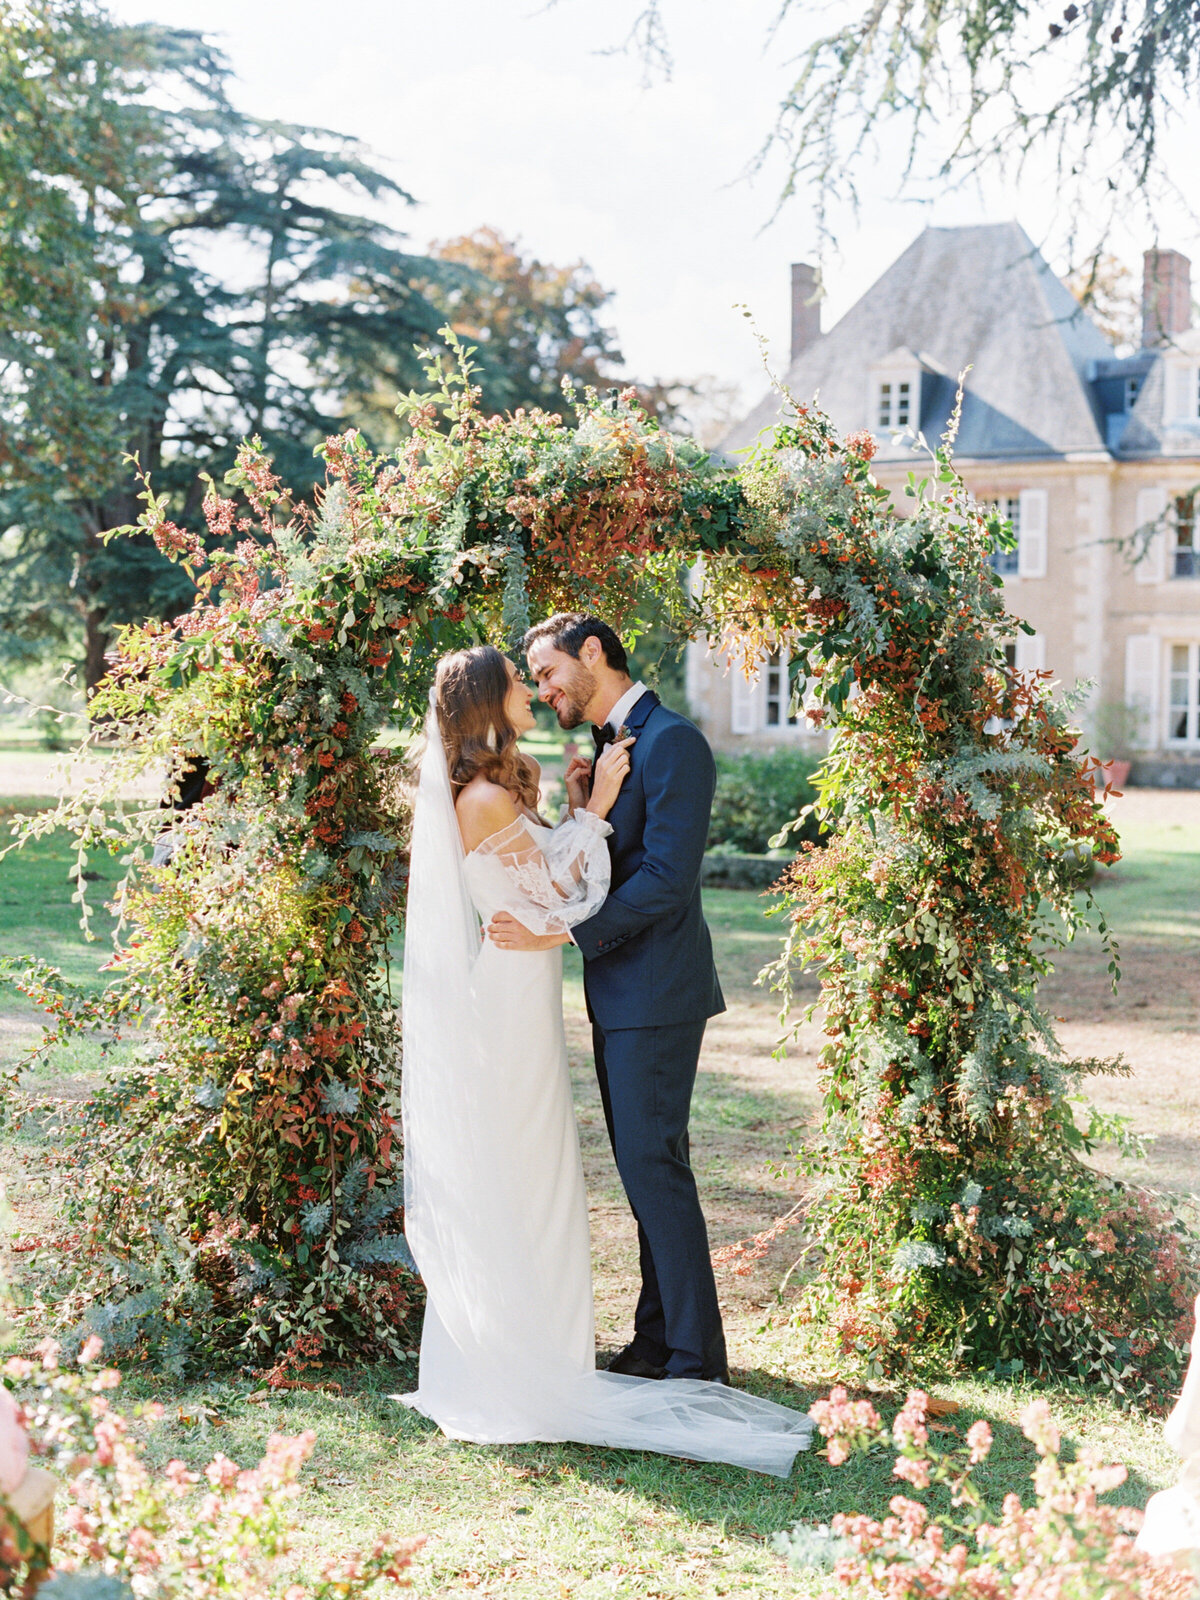 chateau-bouthonvilliers-wedding-paris-wedding-photographer-mackenzie-reiter-photography-92